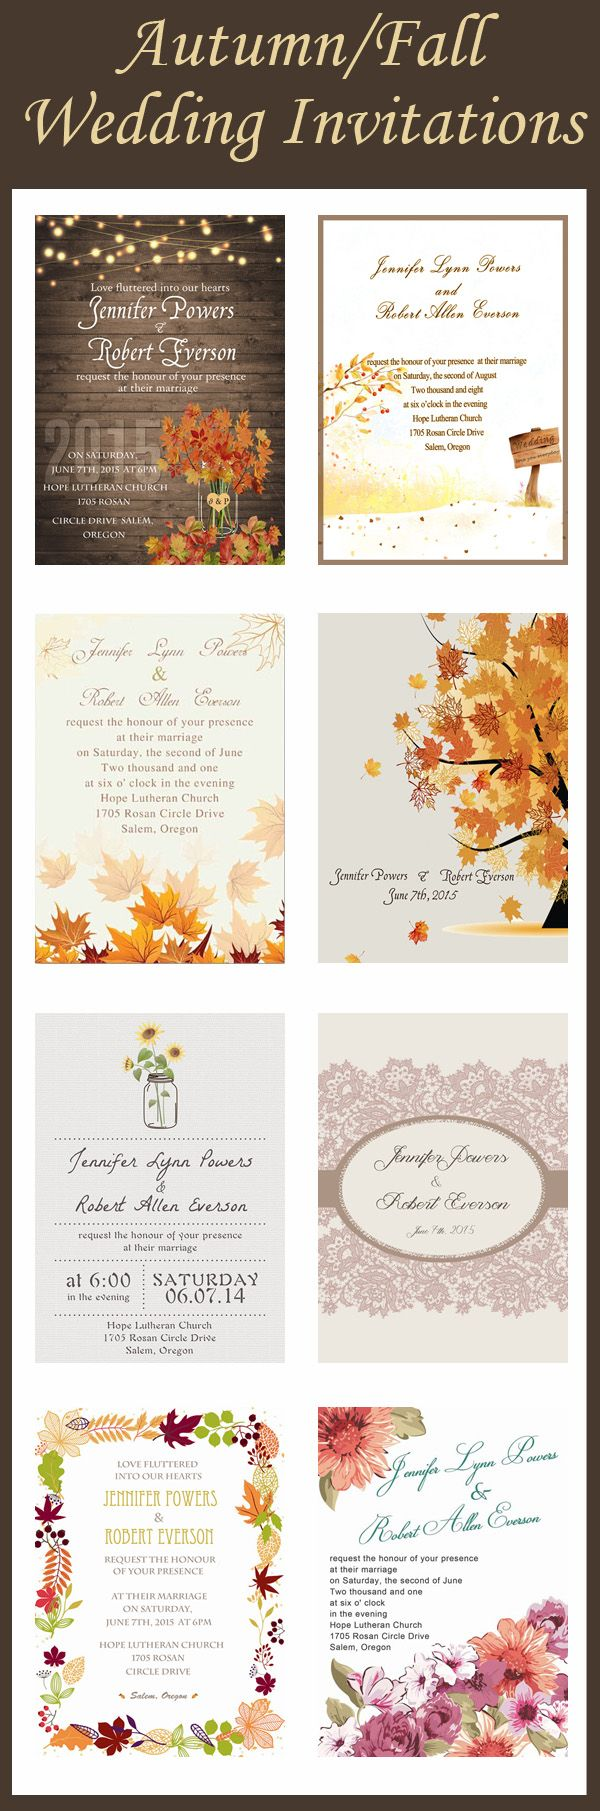 stylish fall wedding invitations for autumn wedding ideas